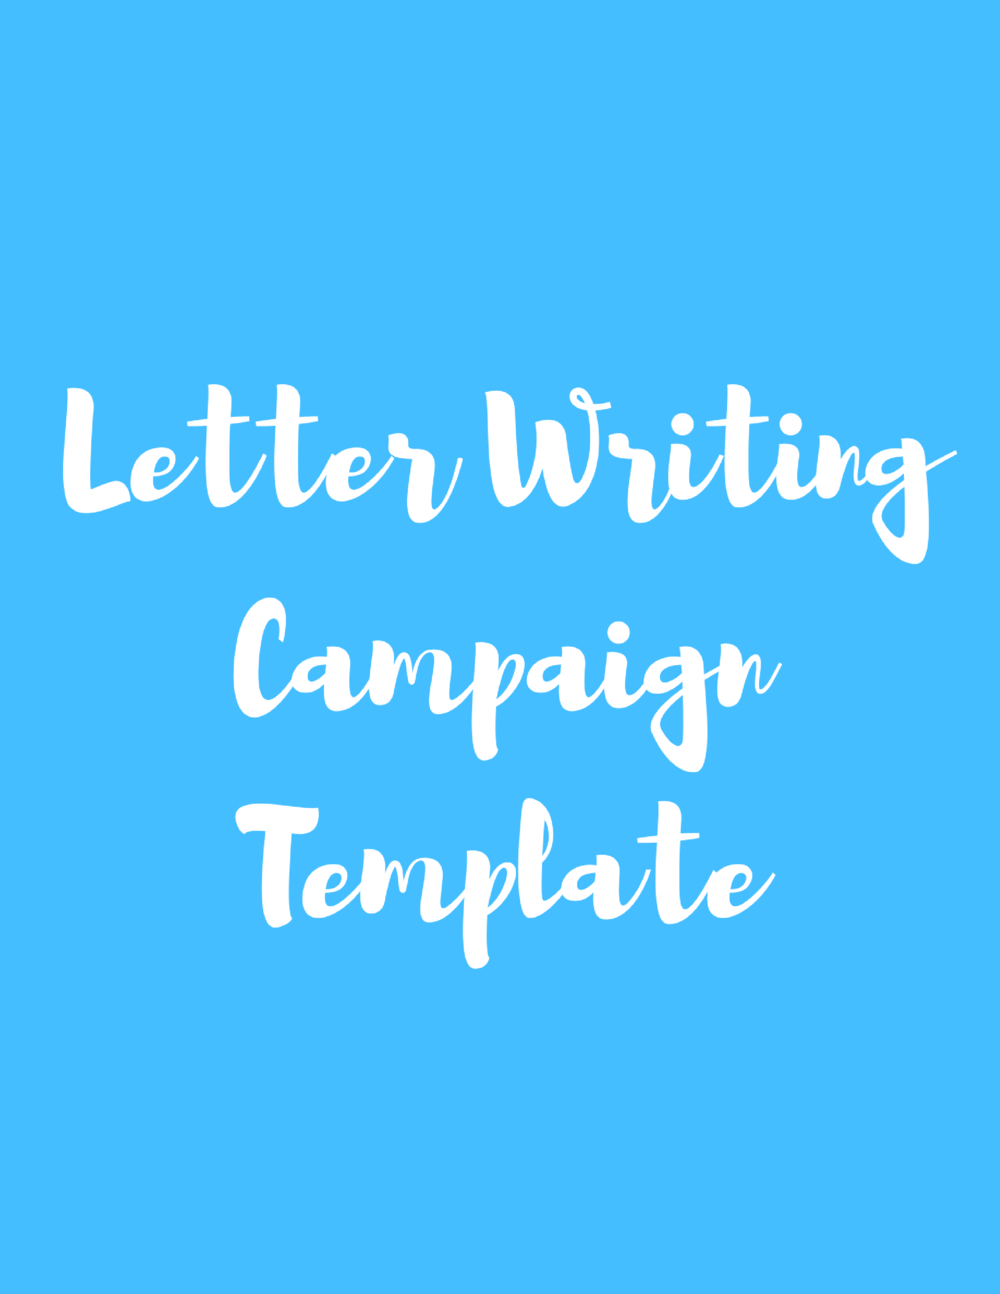 Letter Writing Campaign Template.png